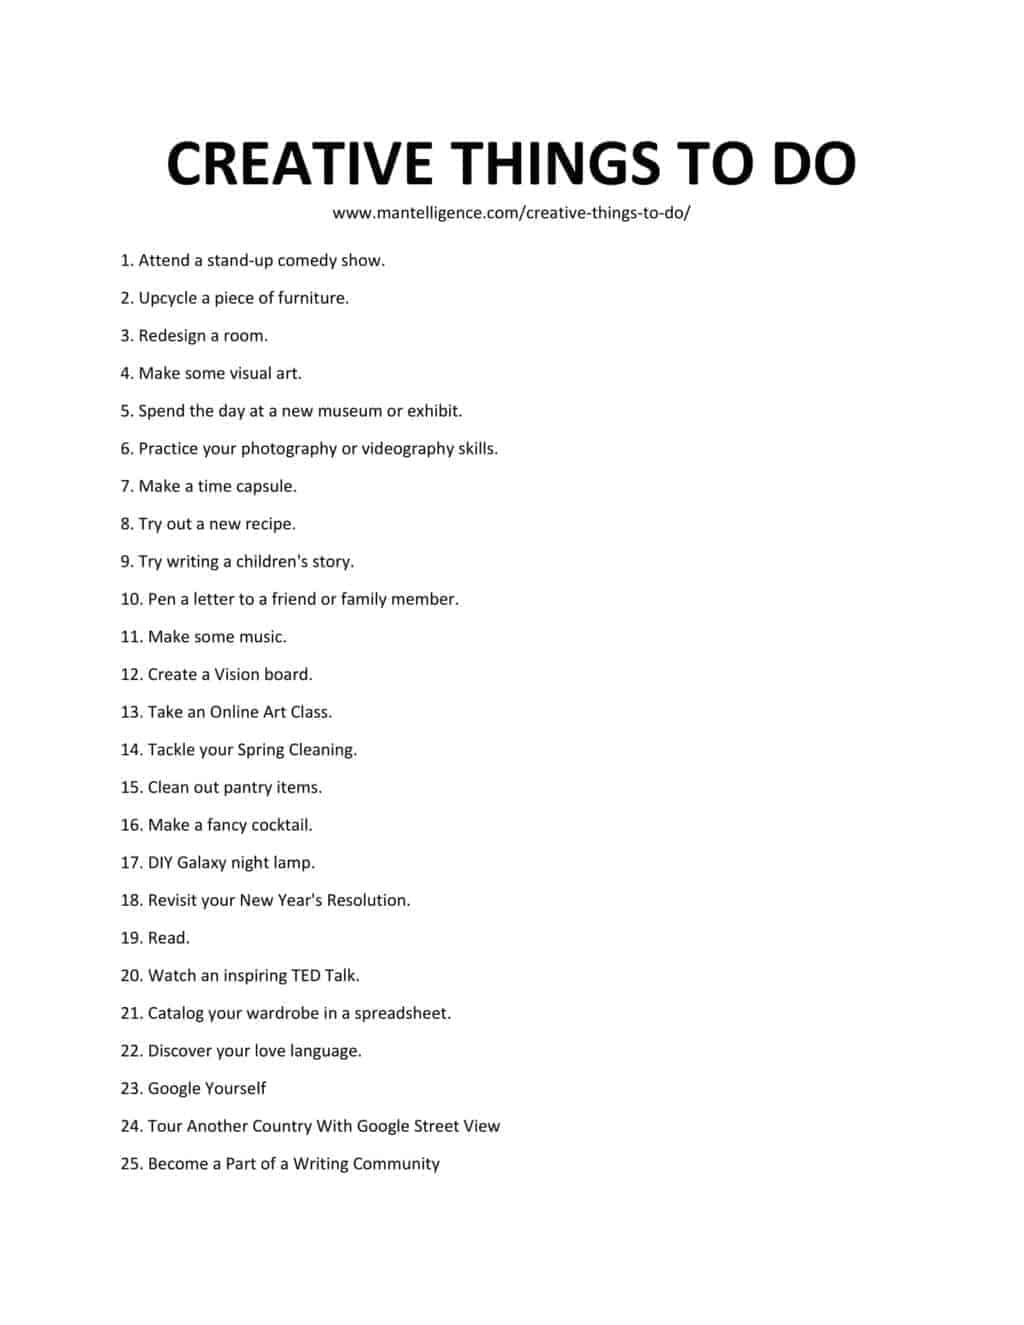 List of Creative Things To Do